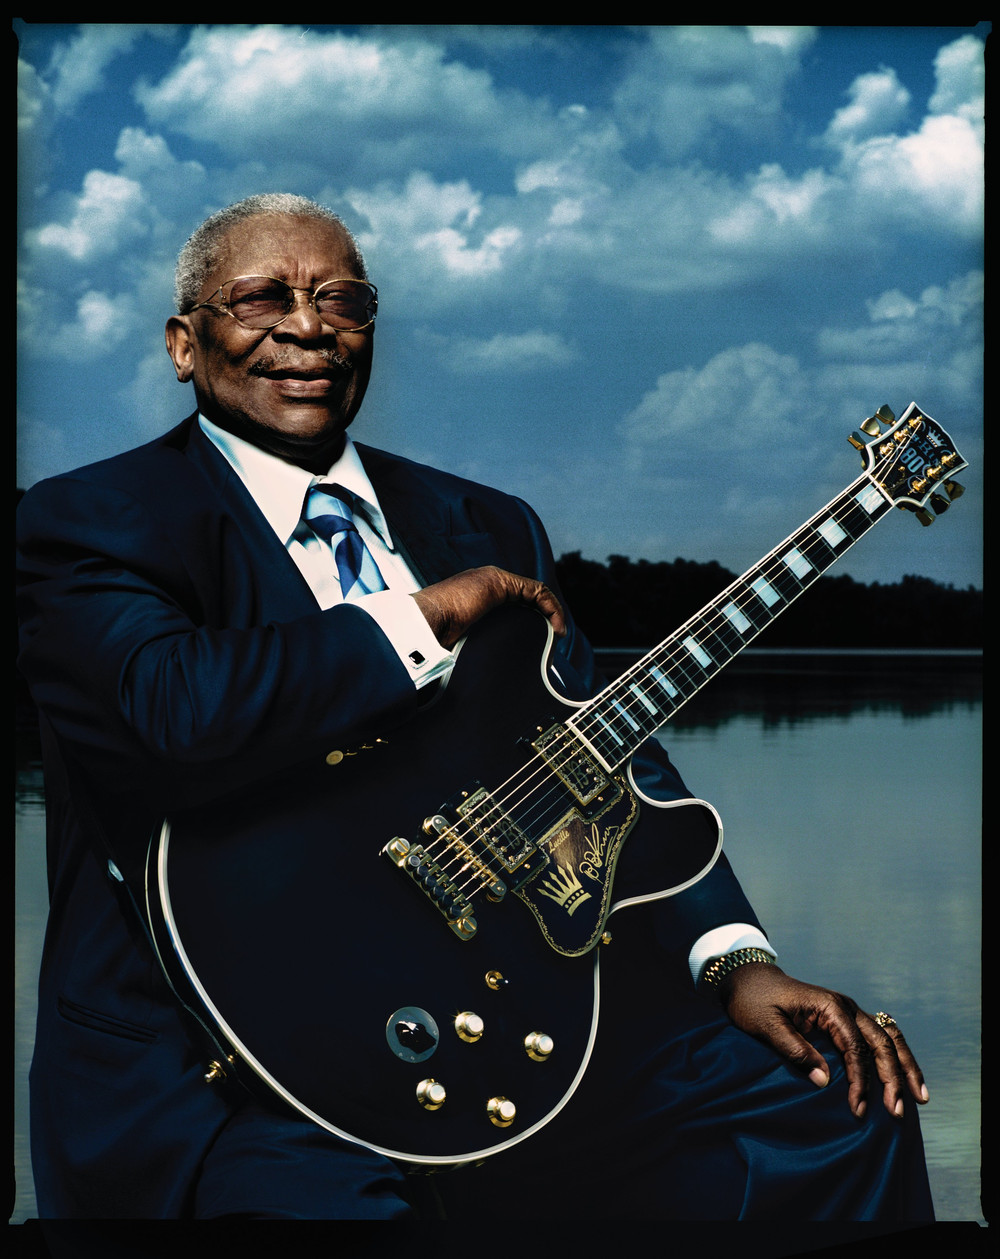 b b king on spotify. Black Bedroom Furniture Sets. Home Design Ideas